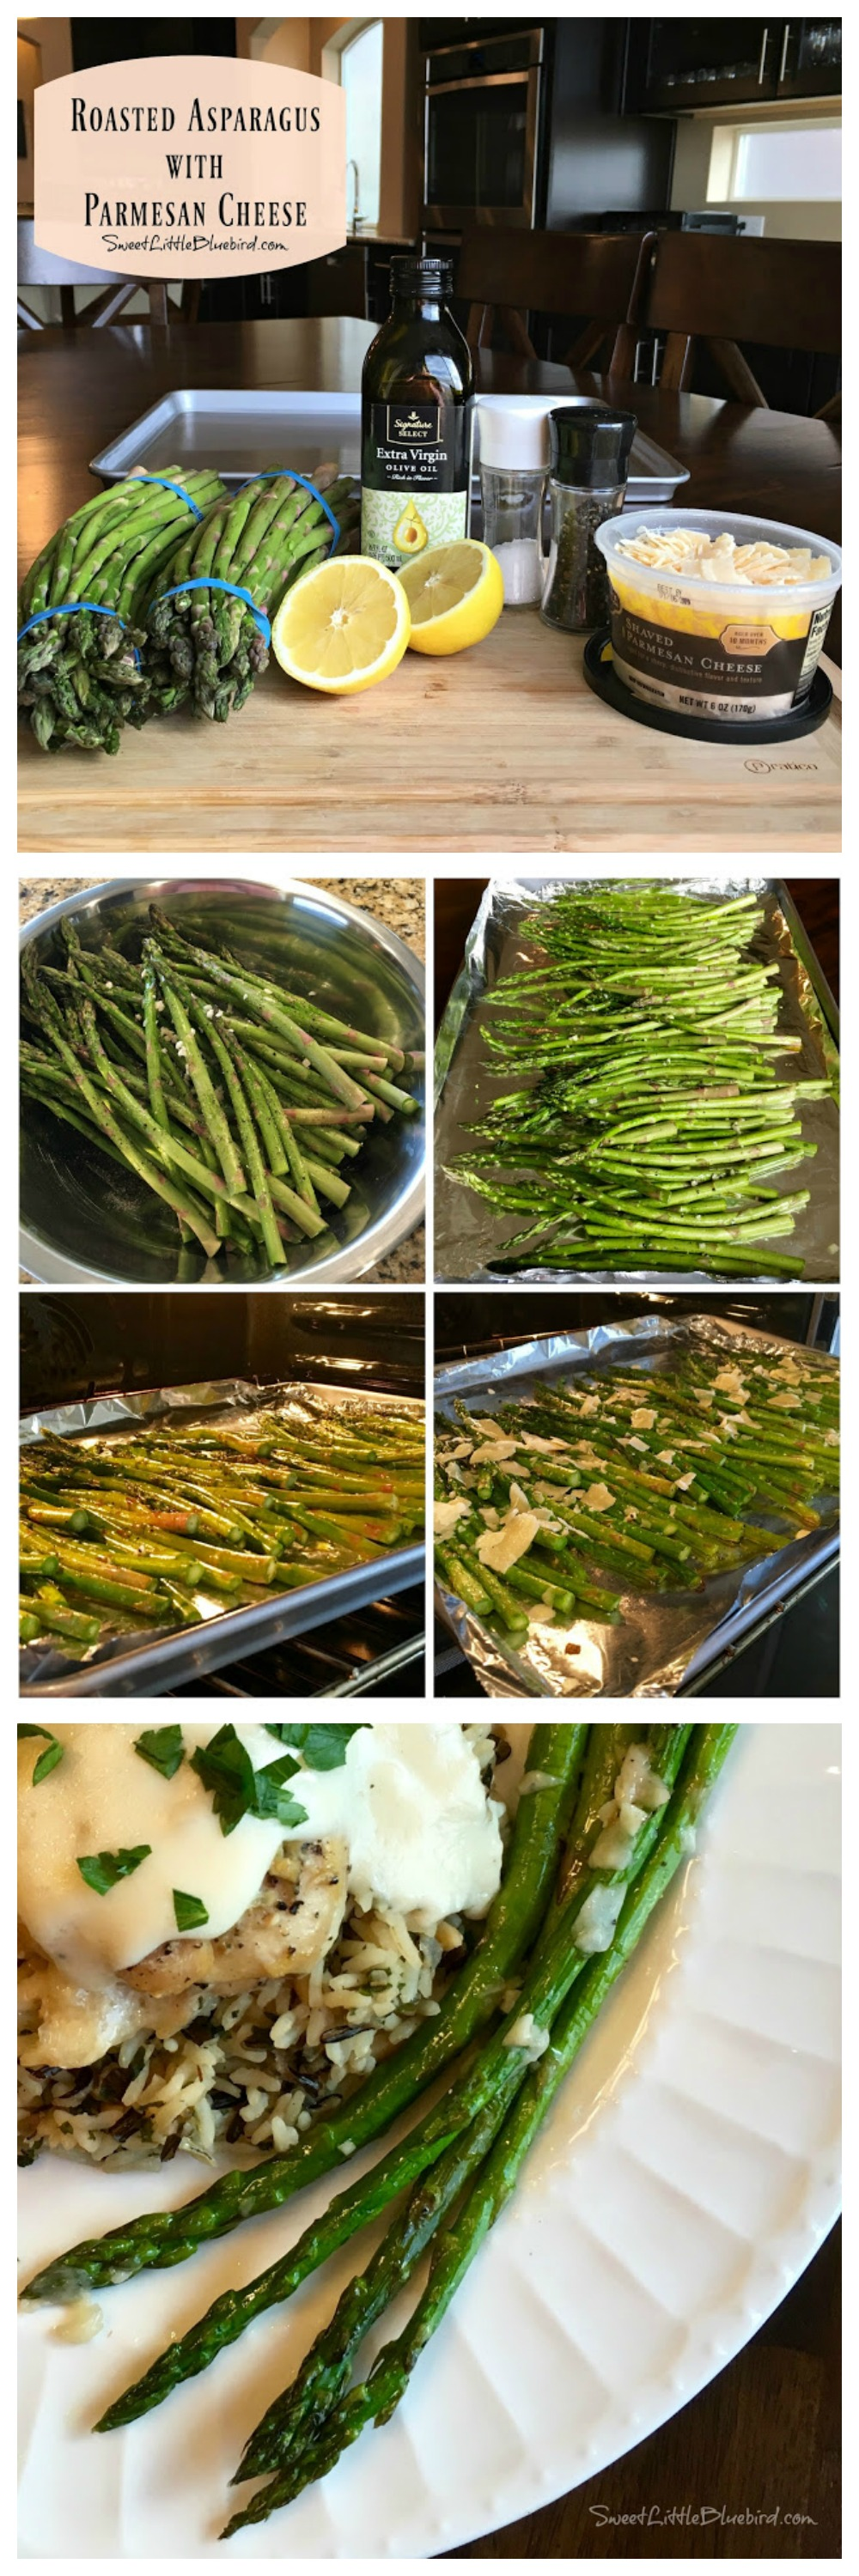 ROASTED ASPARAGUS with PARMESAN CHEESE - Sure to become a new favorite side dish for so many meals and is perfect for holidays. So simple to make and absolutely delicious!!